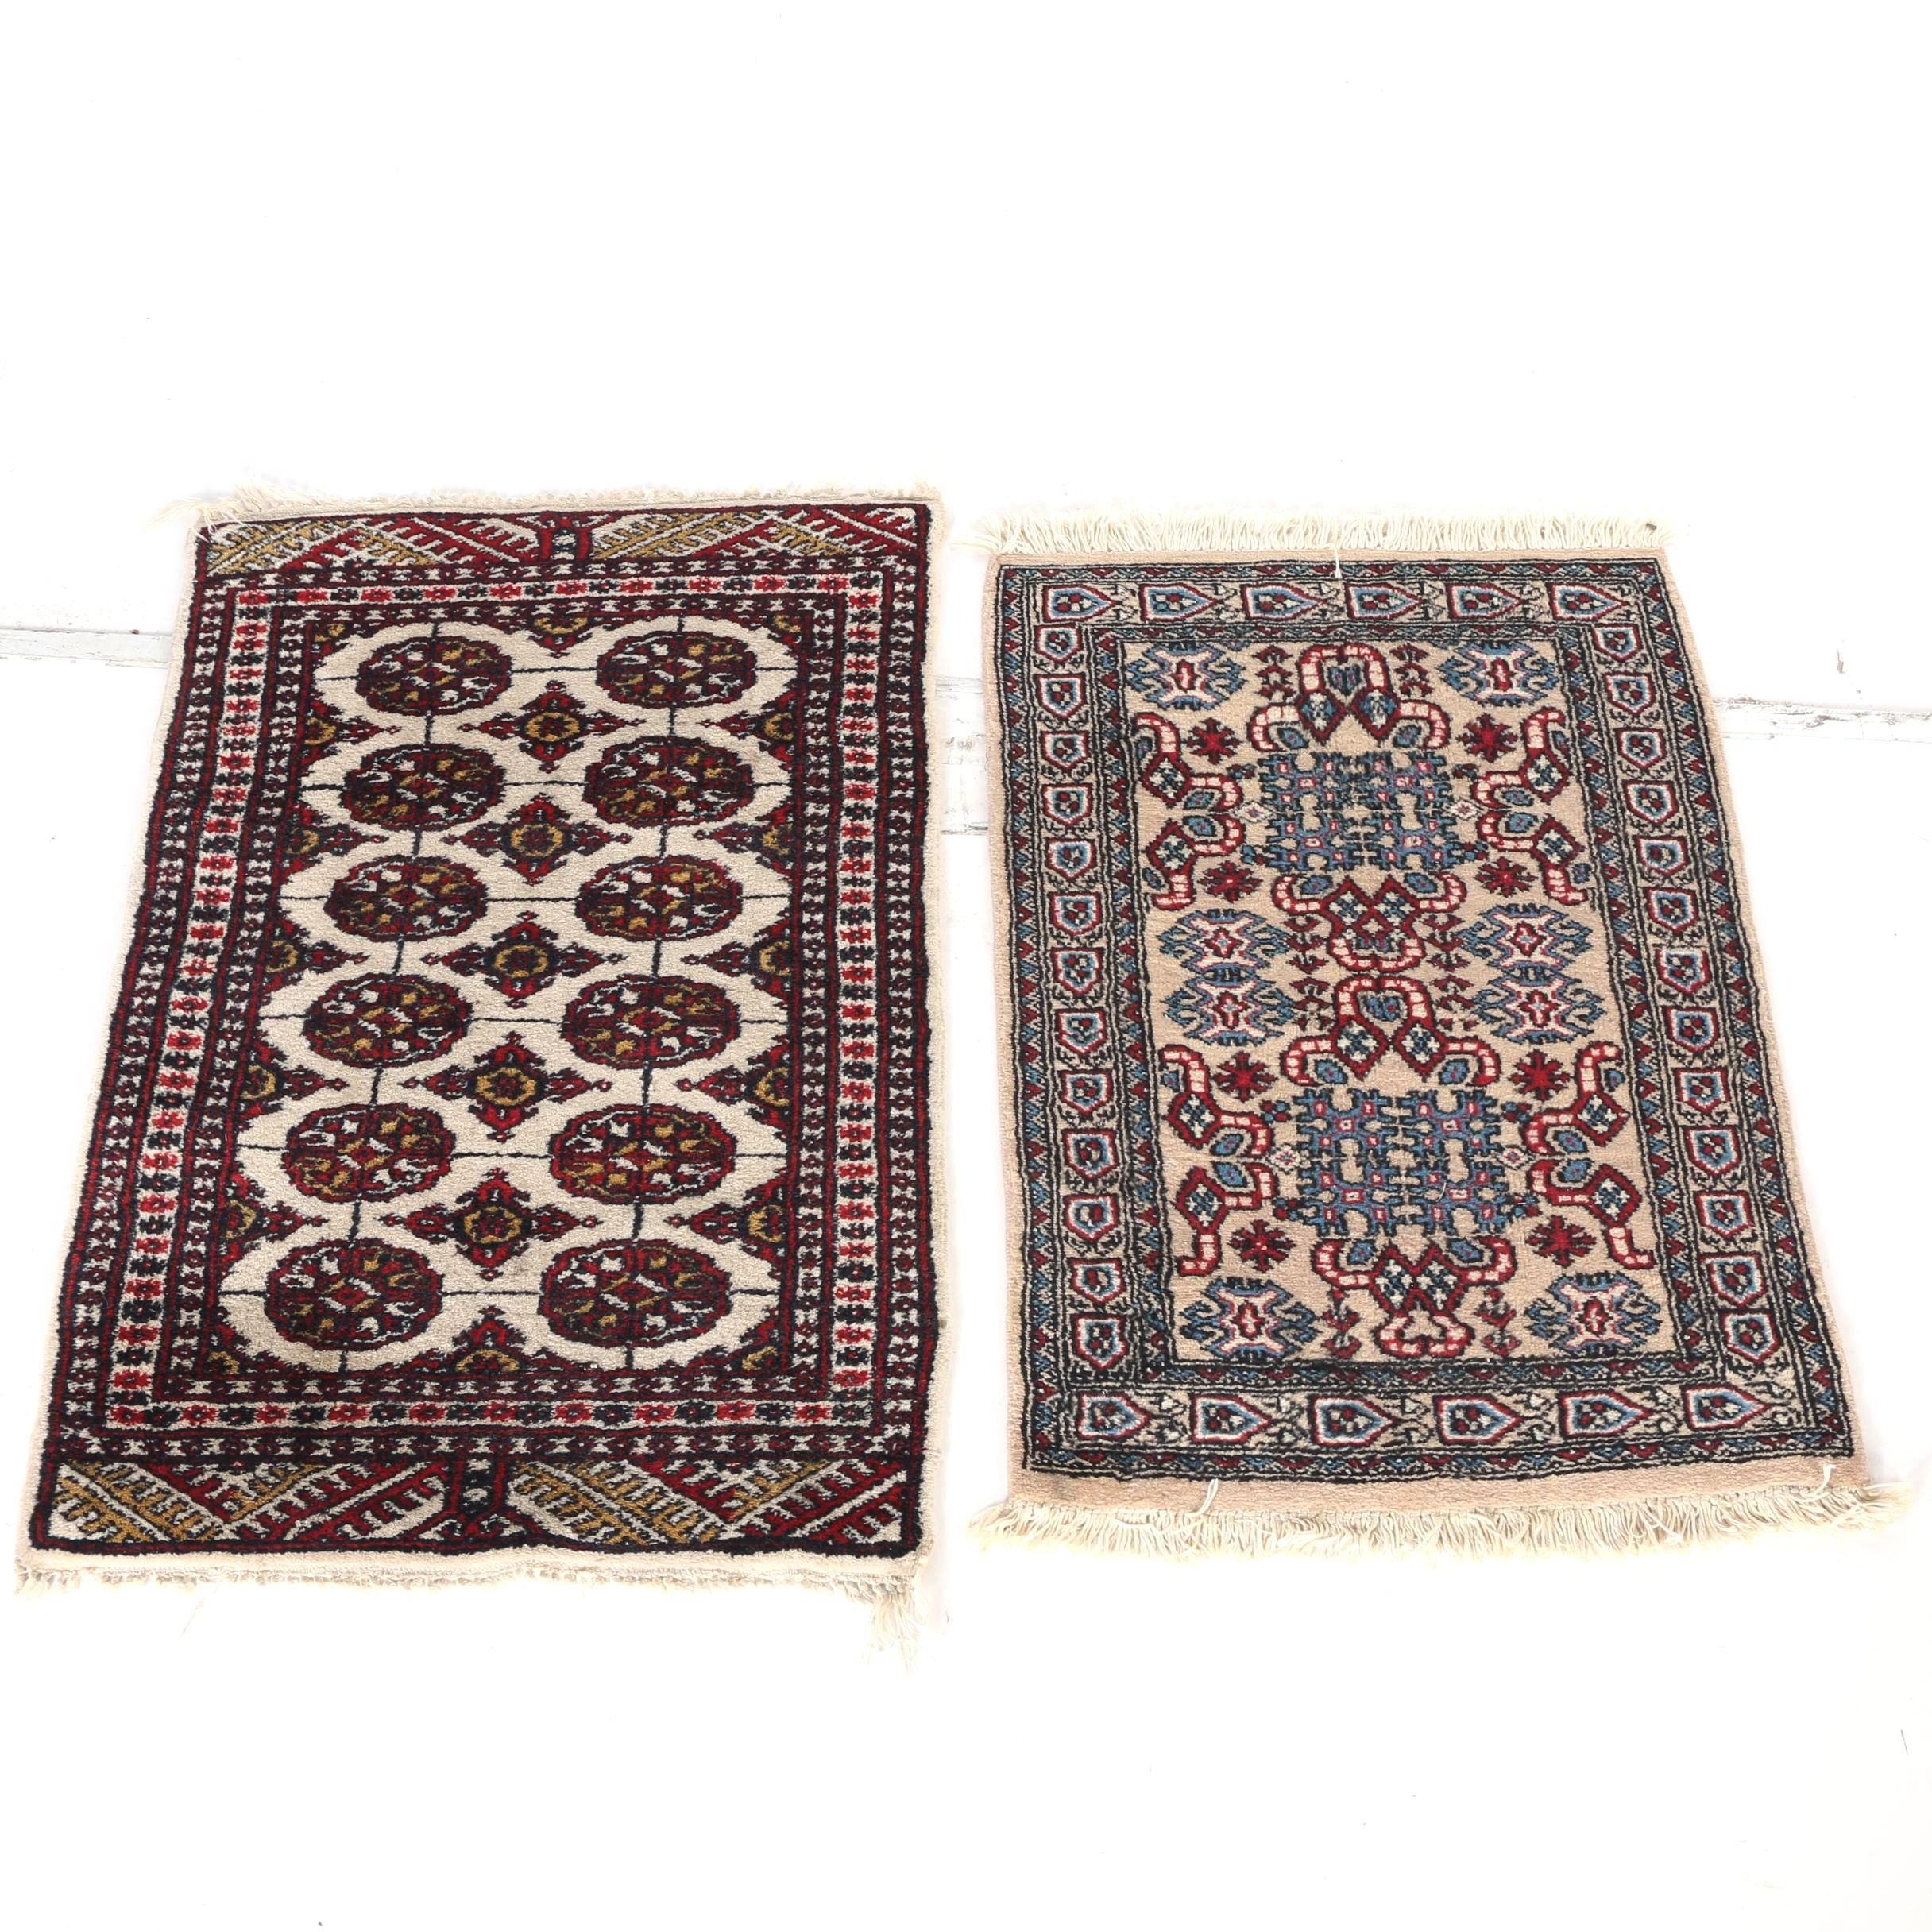 Hand-Knotted Indo-Bokhara and Indo-Turkmen Accent Rugs